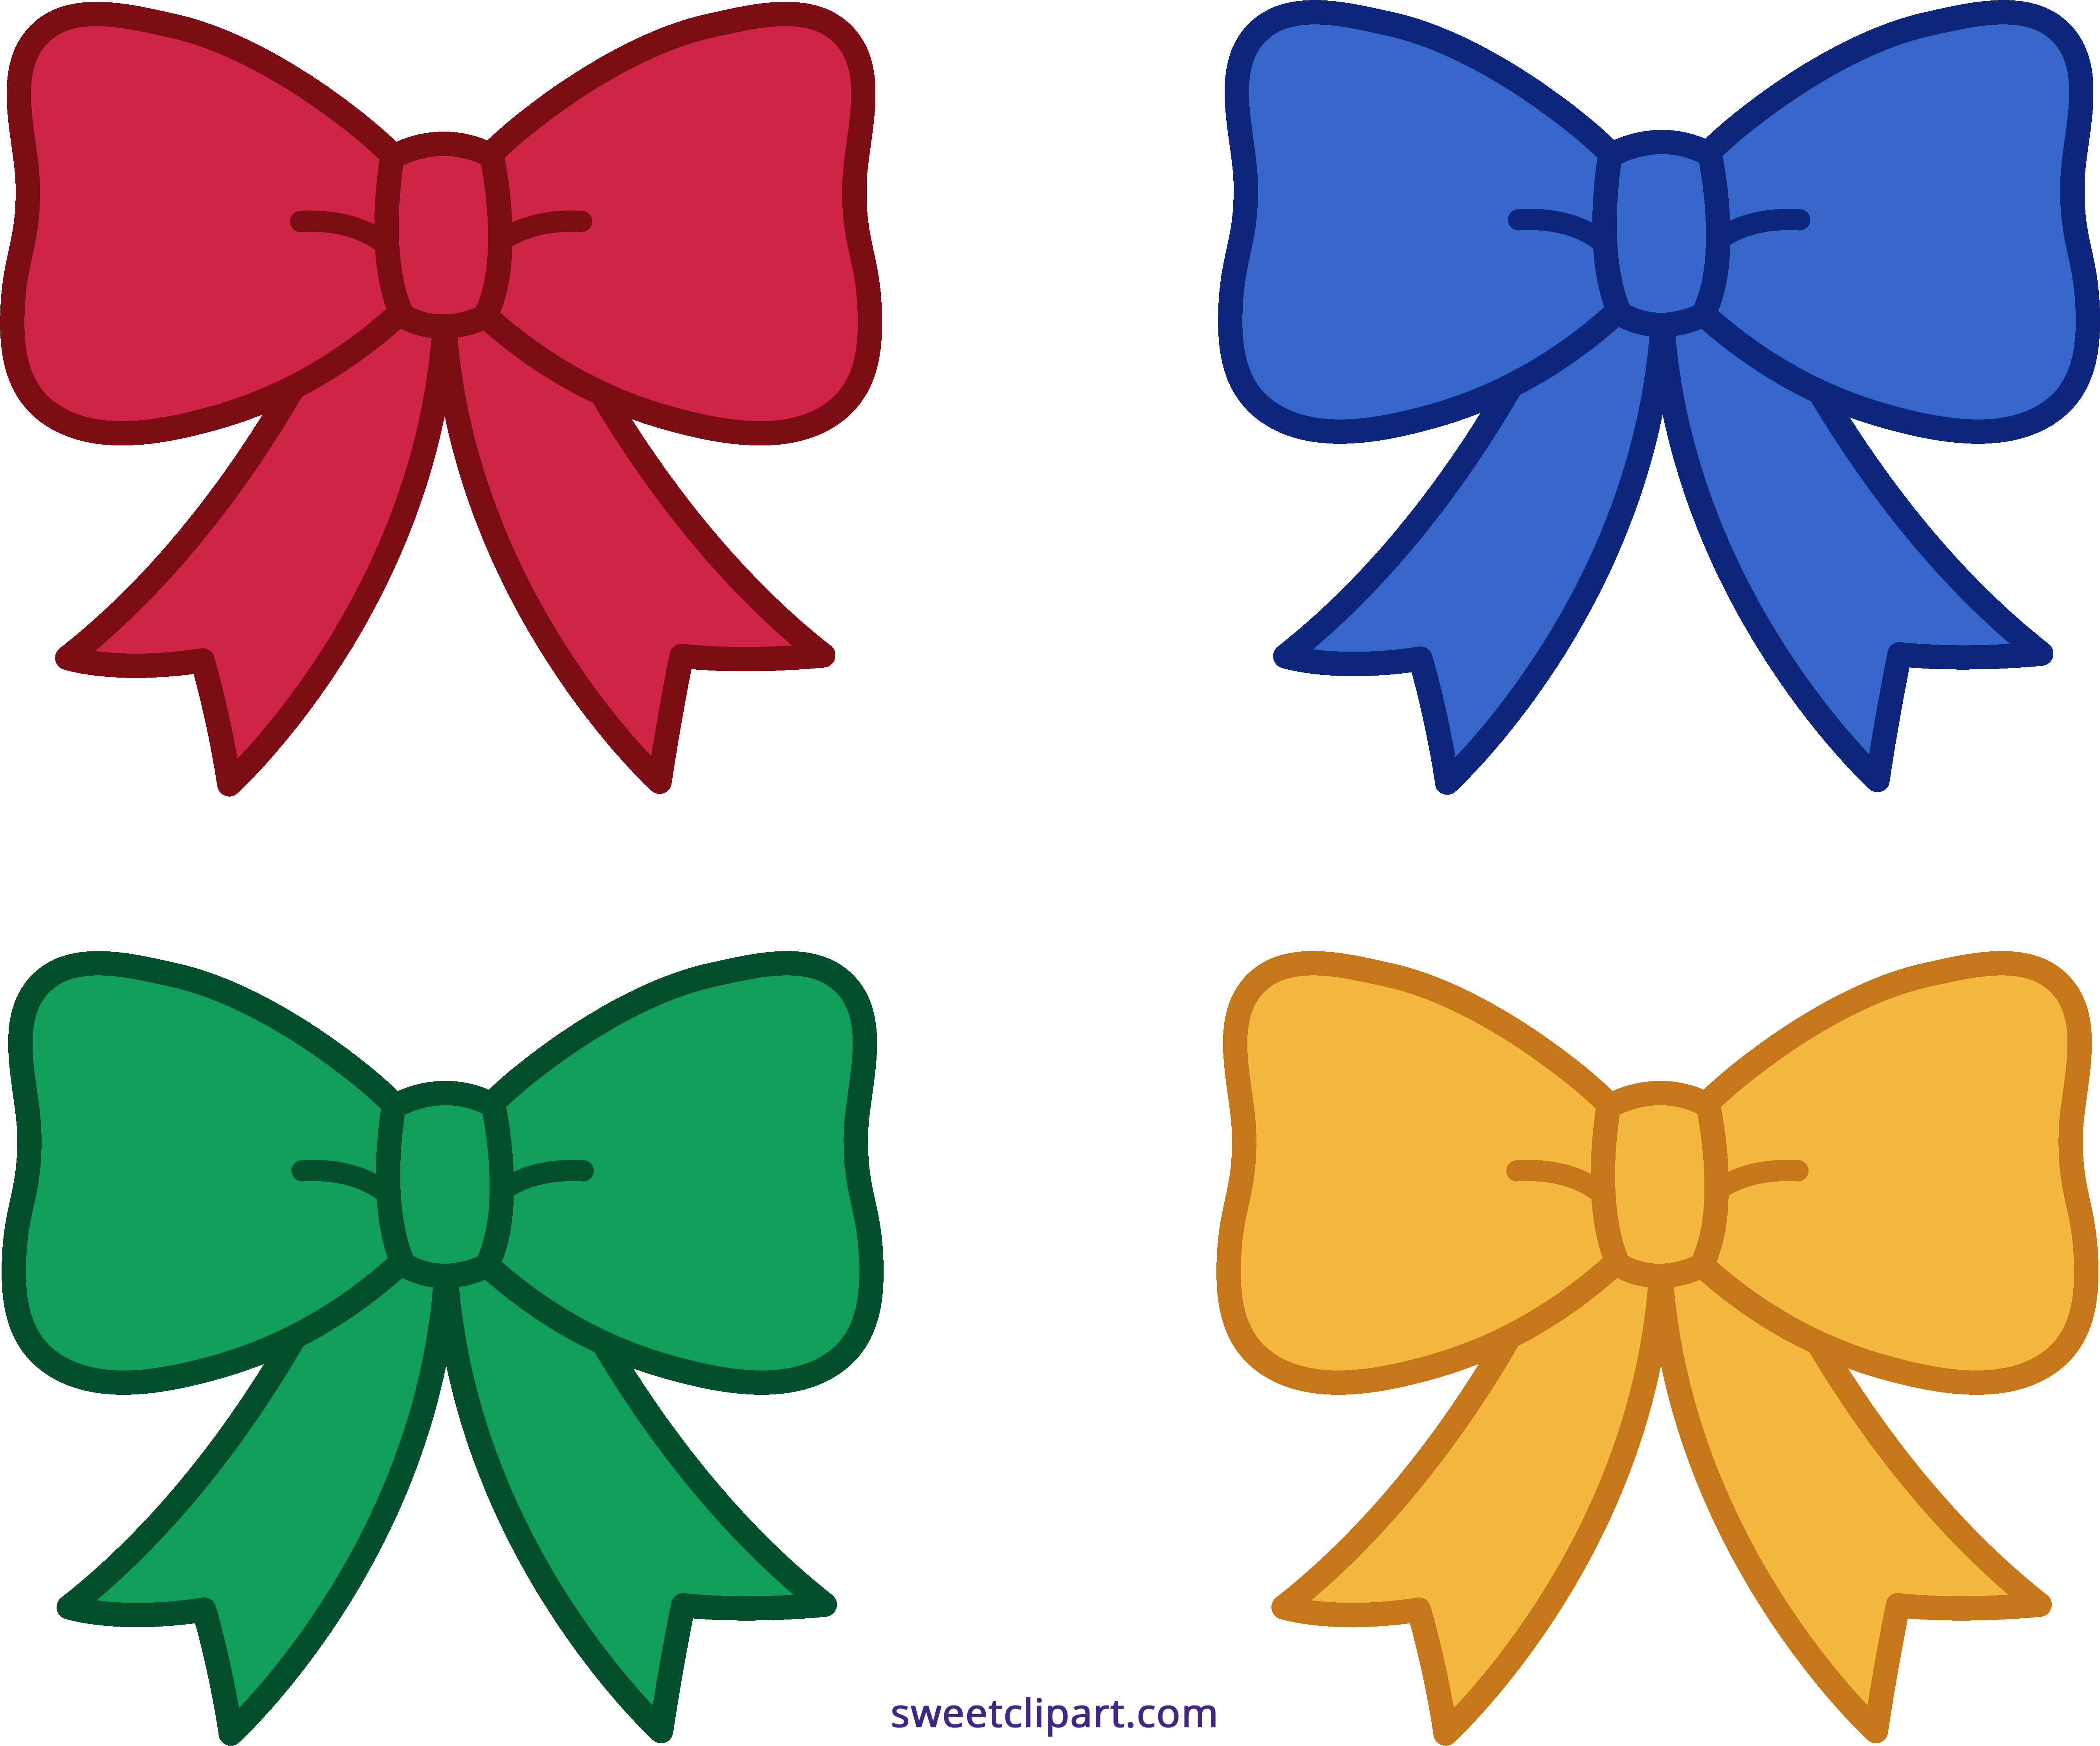 Holidays clipart sweet. Four christmas bows clip